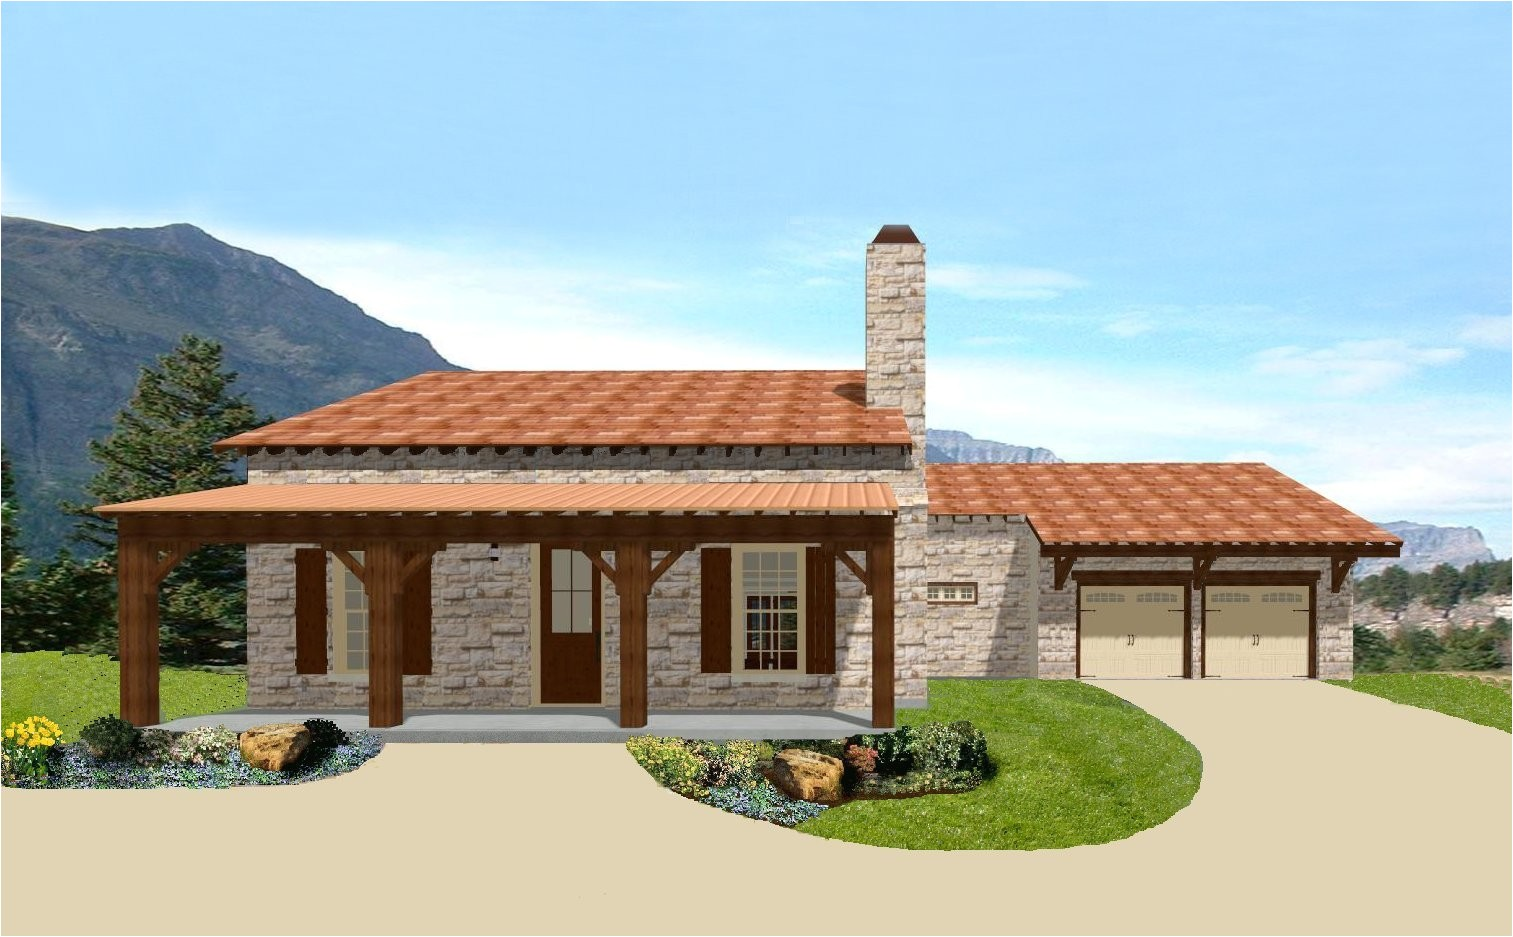 Off The Plan Houses Texas Tiny Homes Tiny Home Plans Small Luxury Home Plans